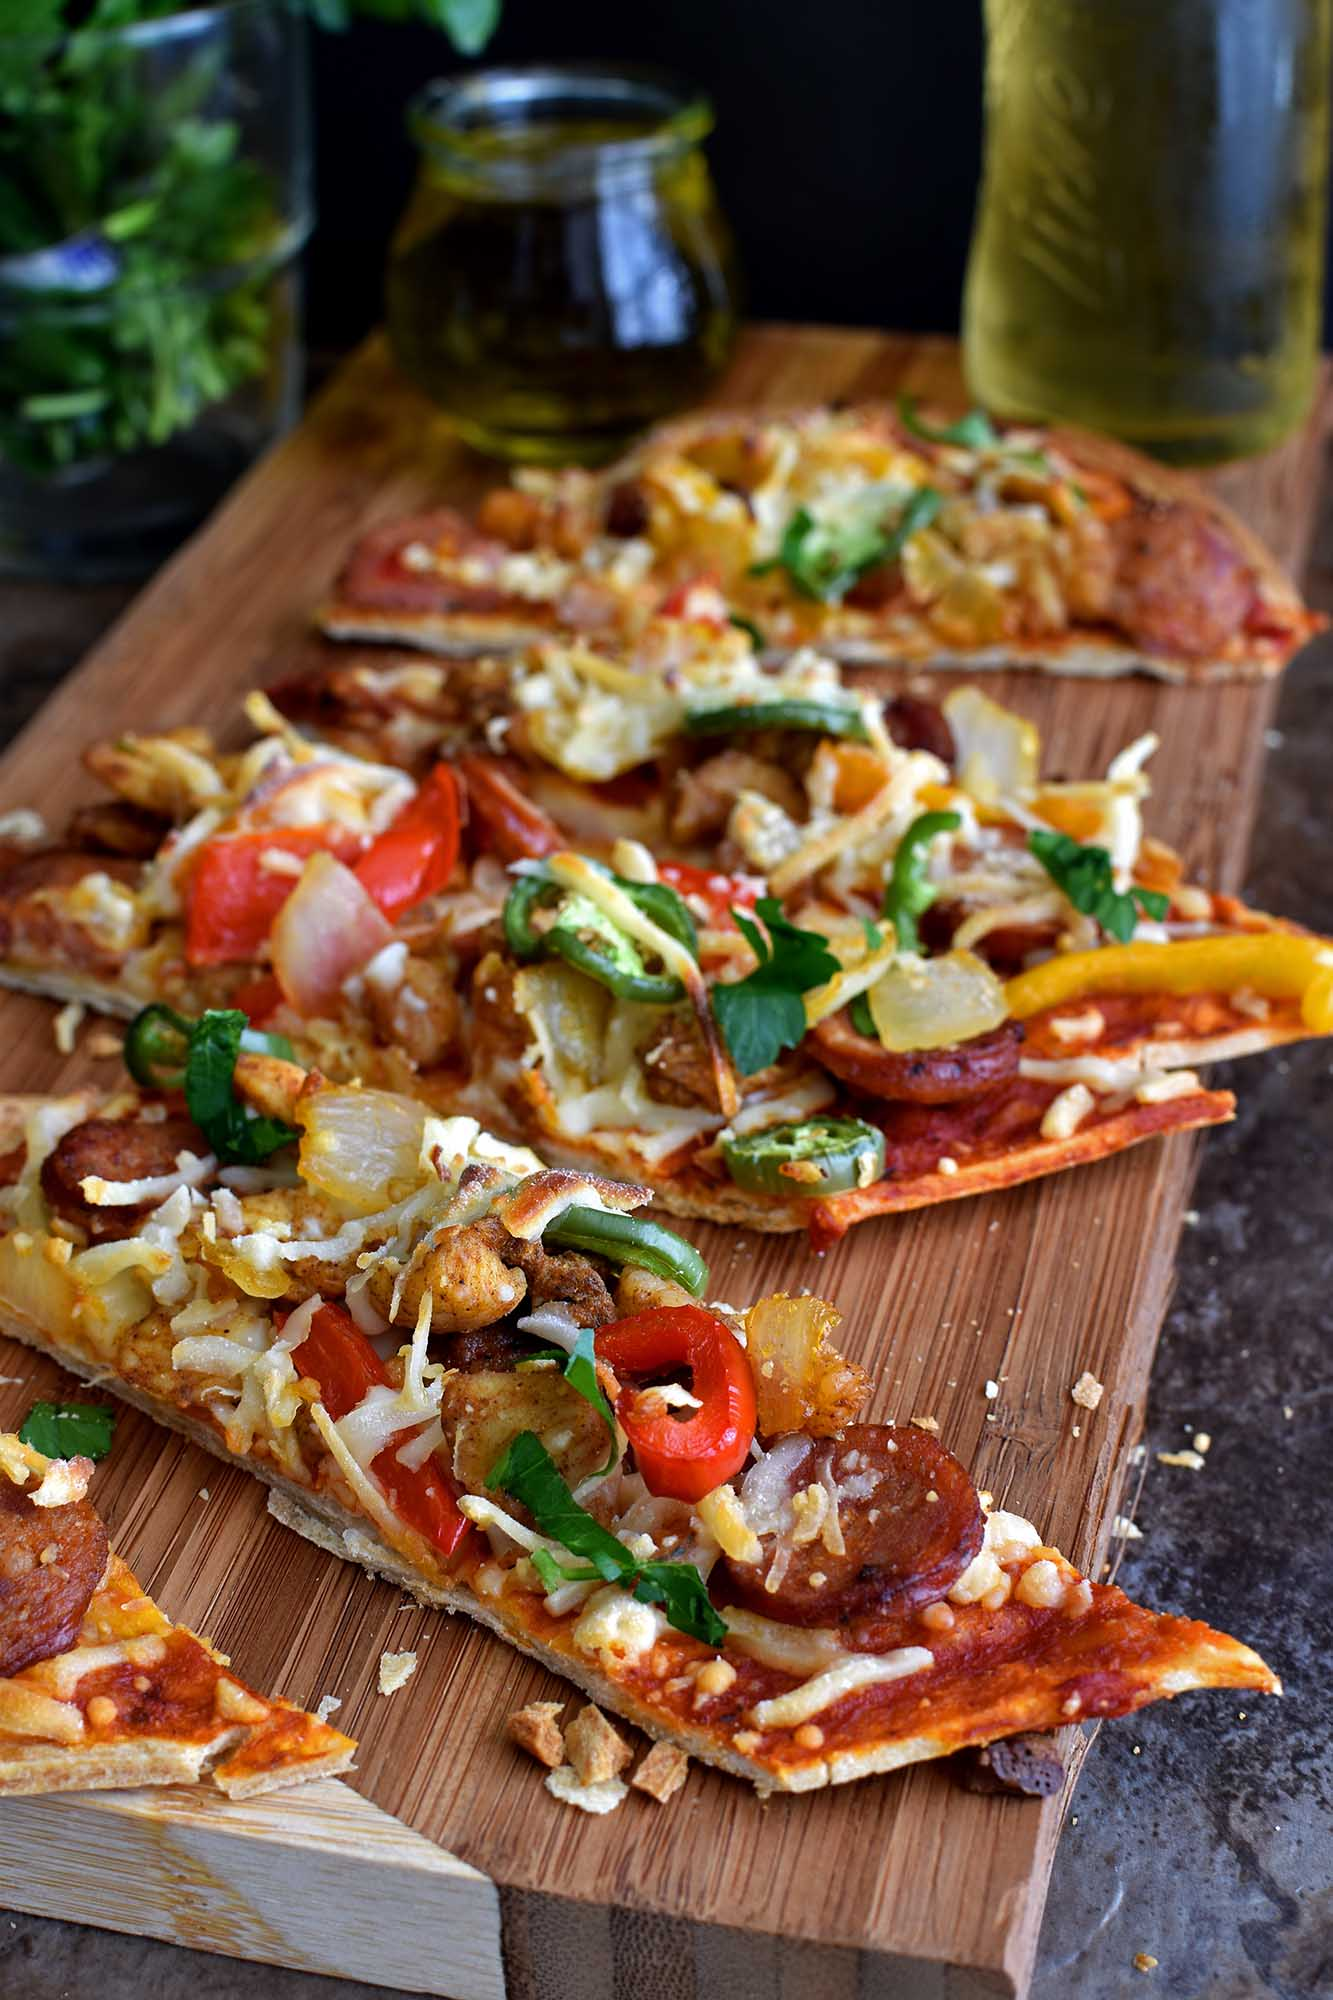 Jambalaya Flatbread - Pepper Delight #pepperdelightblog #recipe #mardigras #appetizer #fattuesday #snack #festival #pizza #flatbread #jambalaya #superbowl #gameday #andouille #cajun